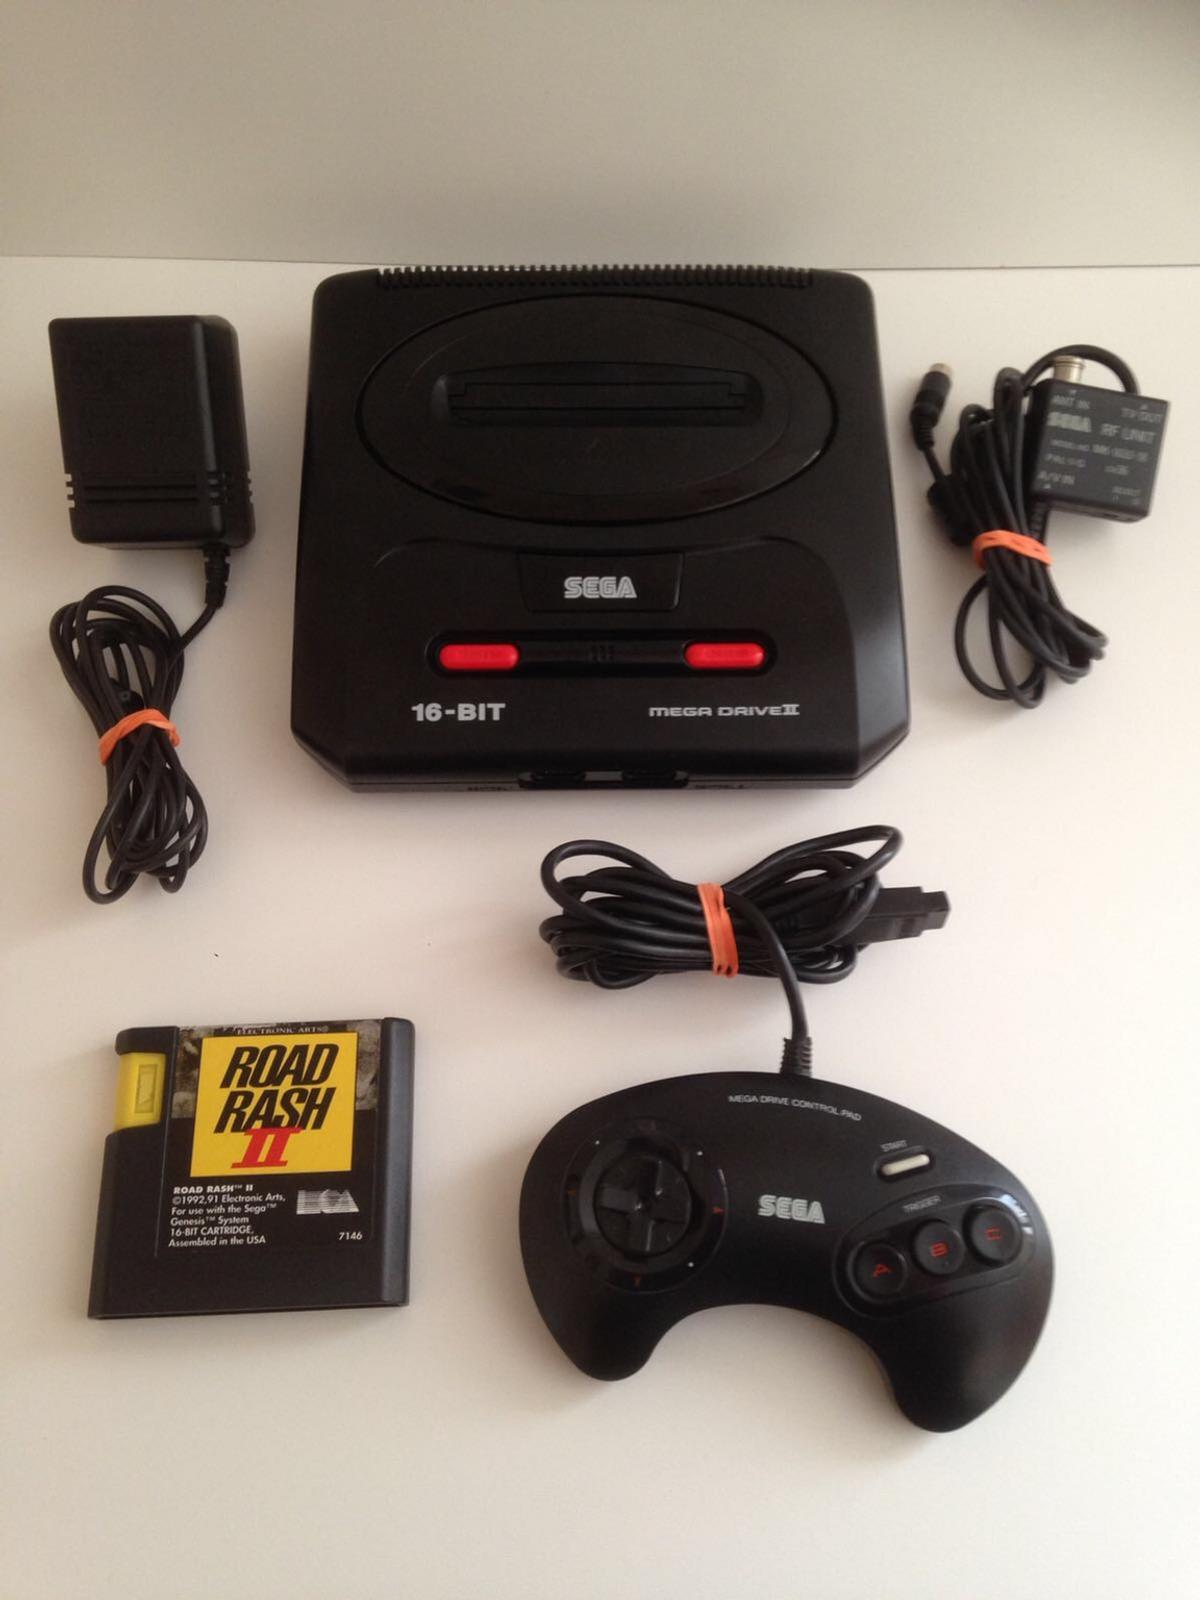 Rare Sega Action chair Sega Megadrive 2 console All cables One controller Road Rash 2 cartridge only All Fully Working £100 ONO